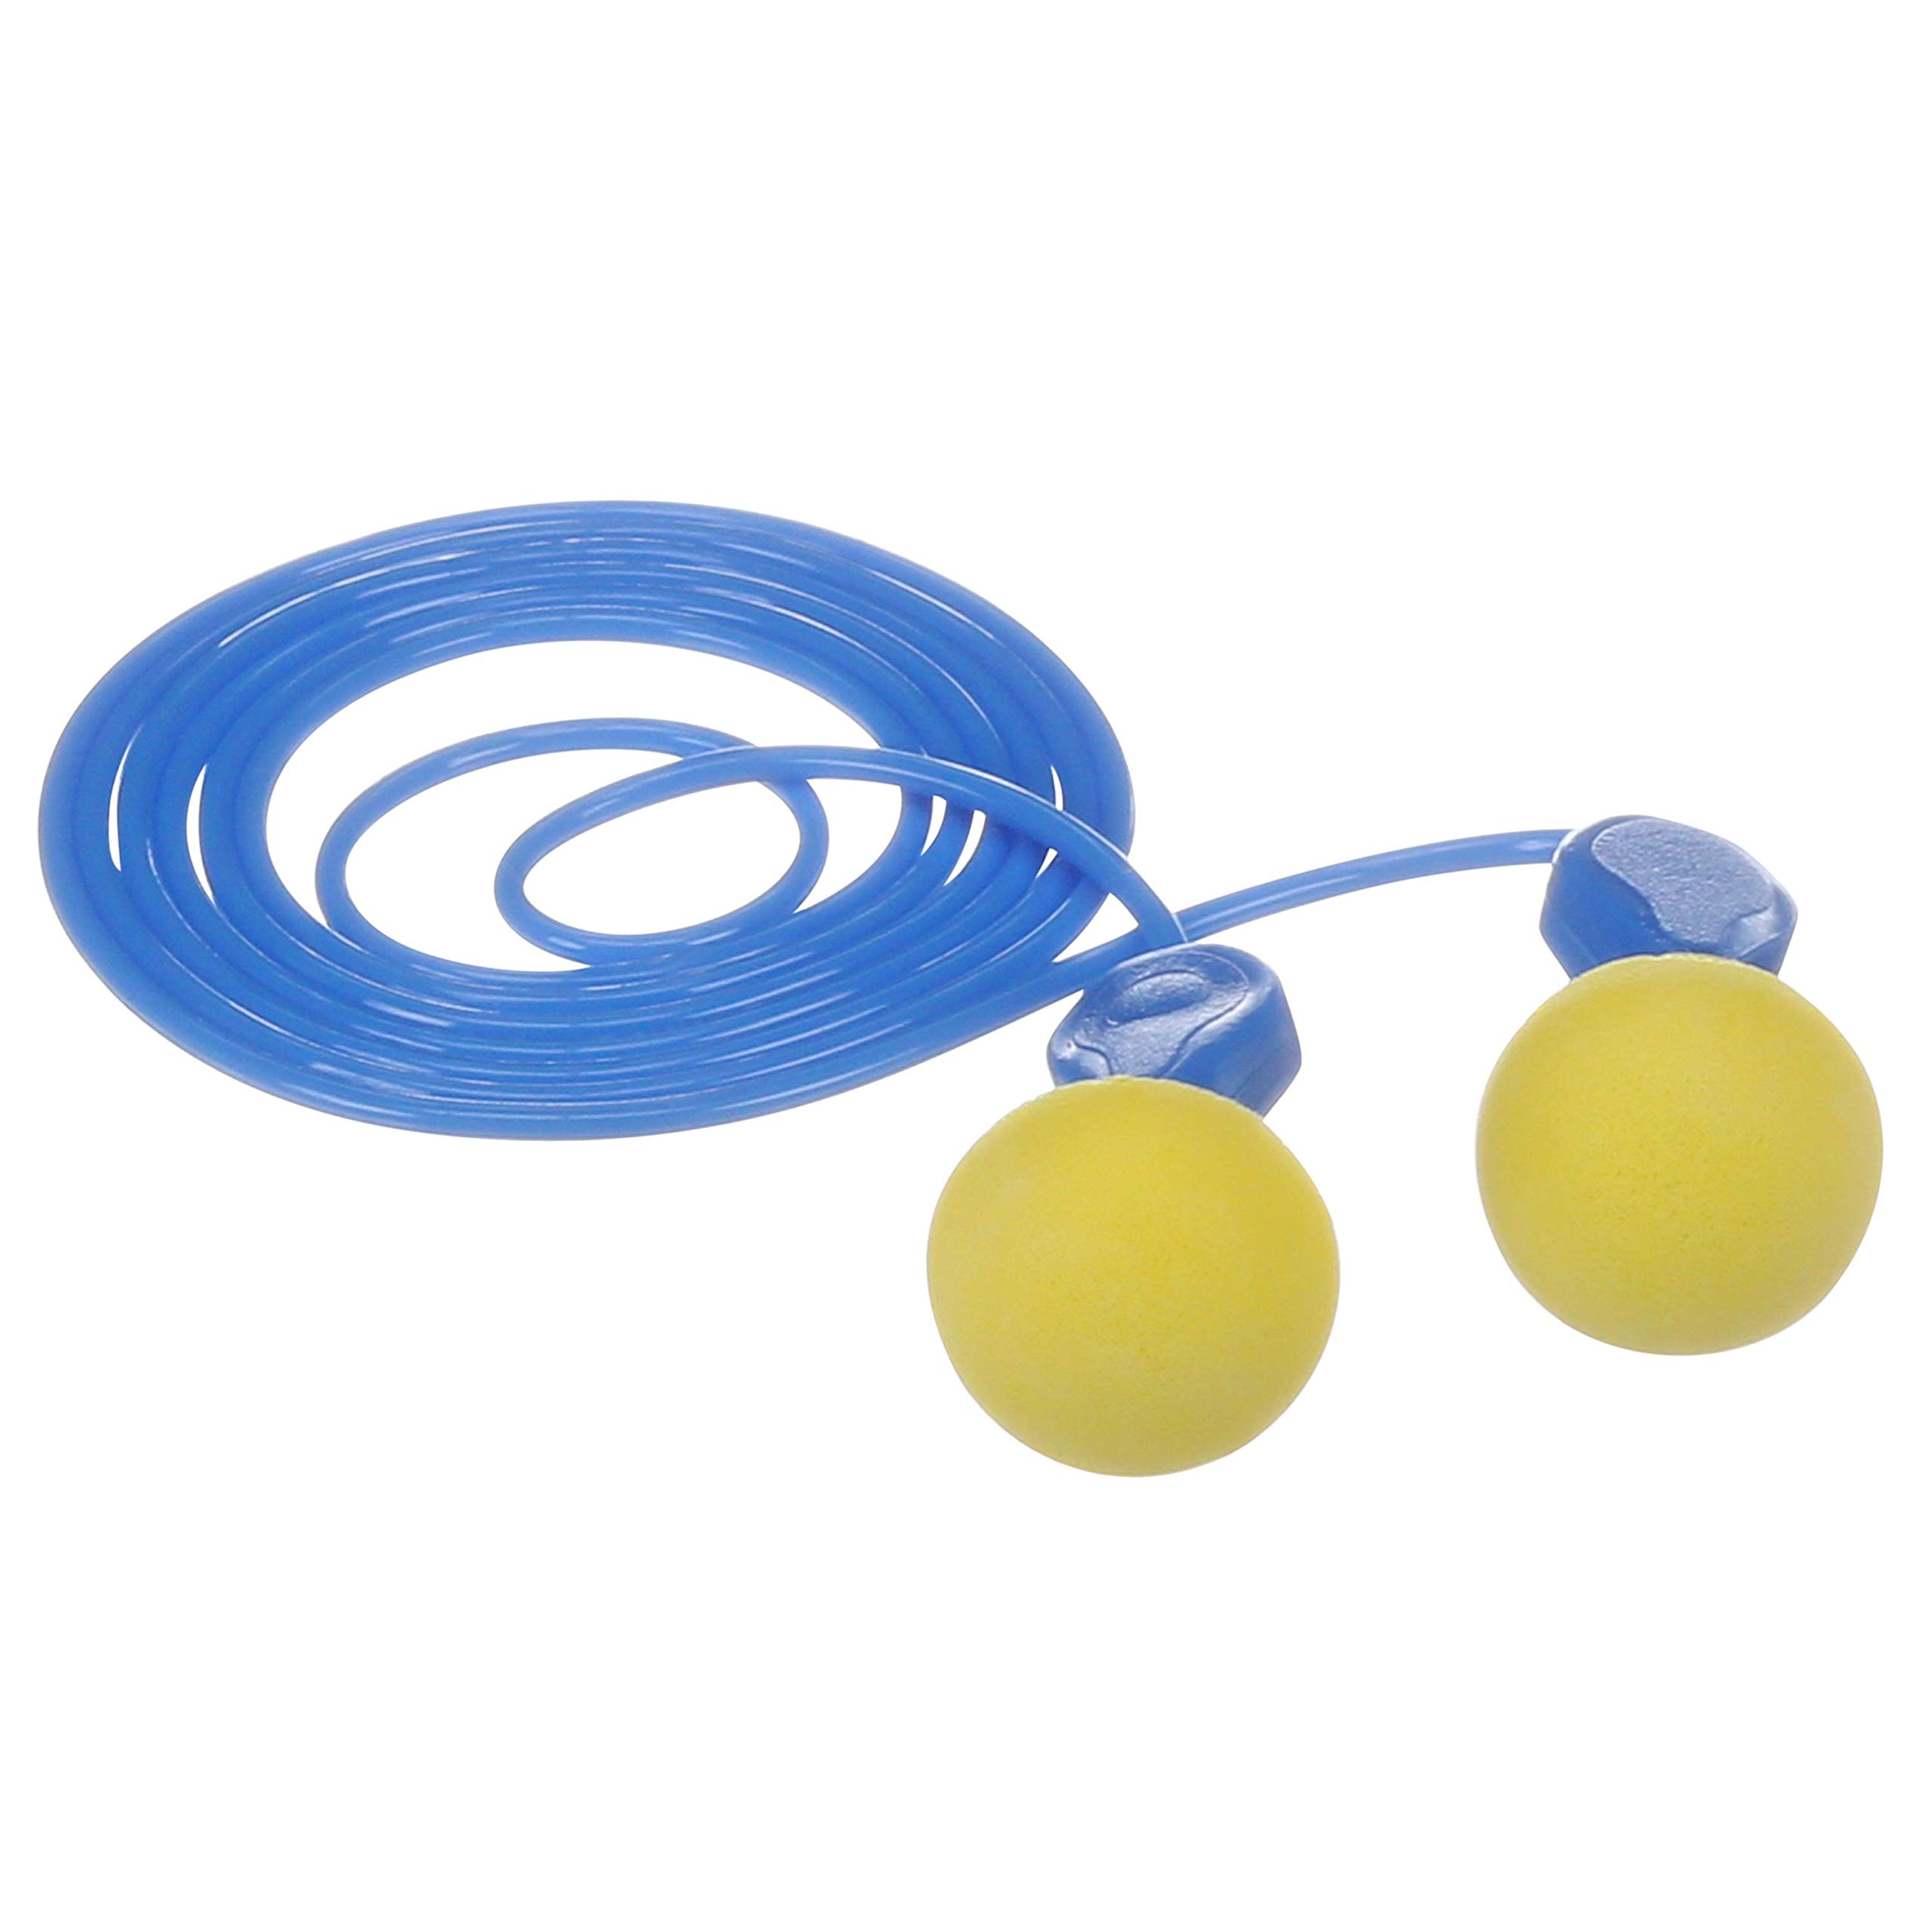 3M E-A-R Express Pod Plugs Corded Earplugs, Hearing Conservation Blue Grips 311-1114 in Pillow Pack (Pack of 100) by 3M Personal Protective Equipment (Image #1)